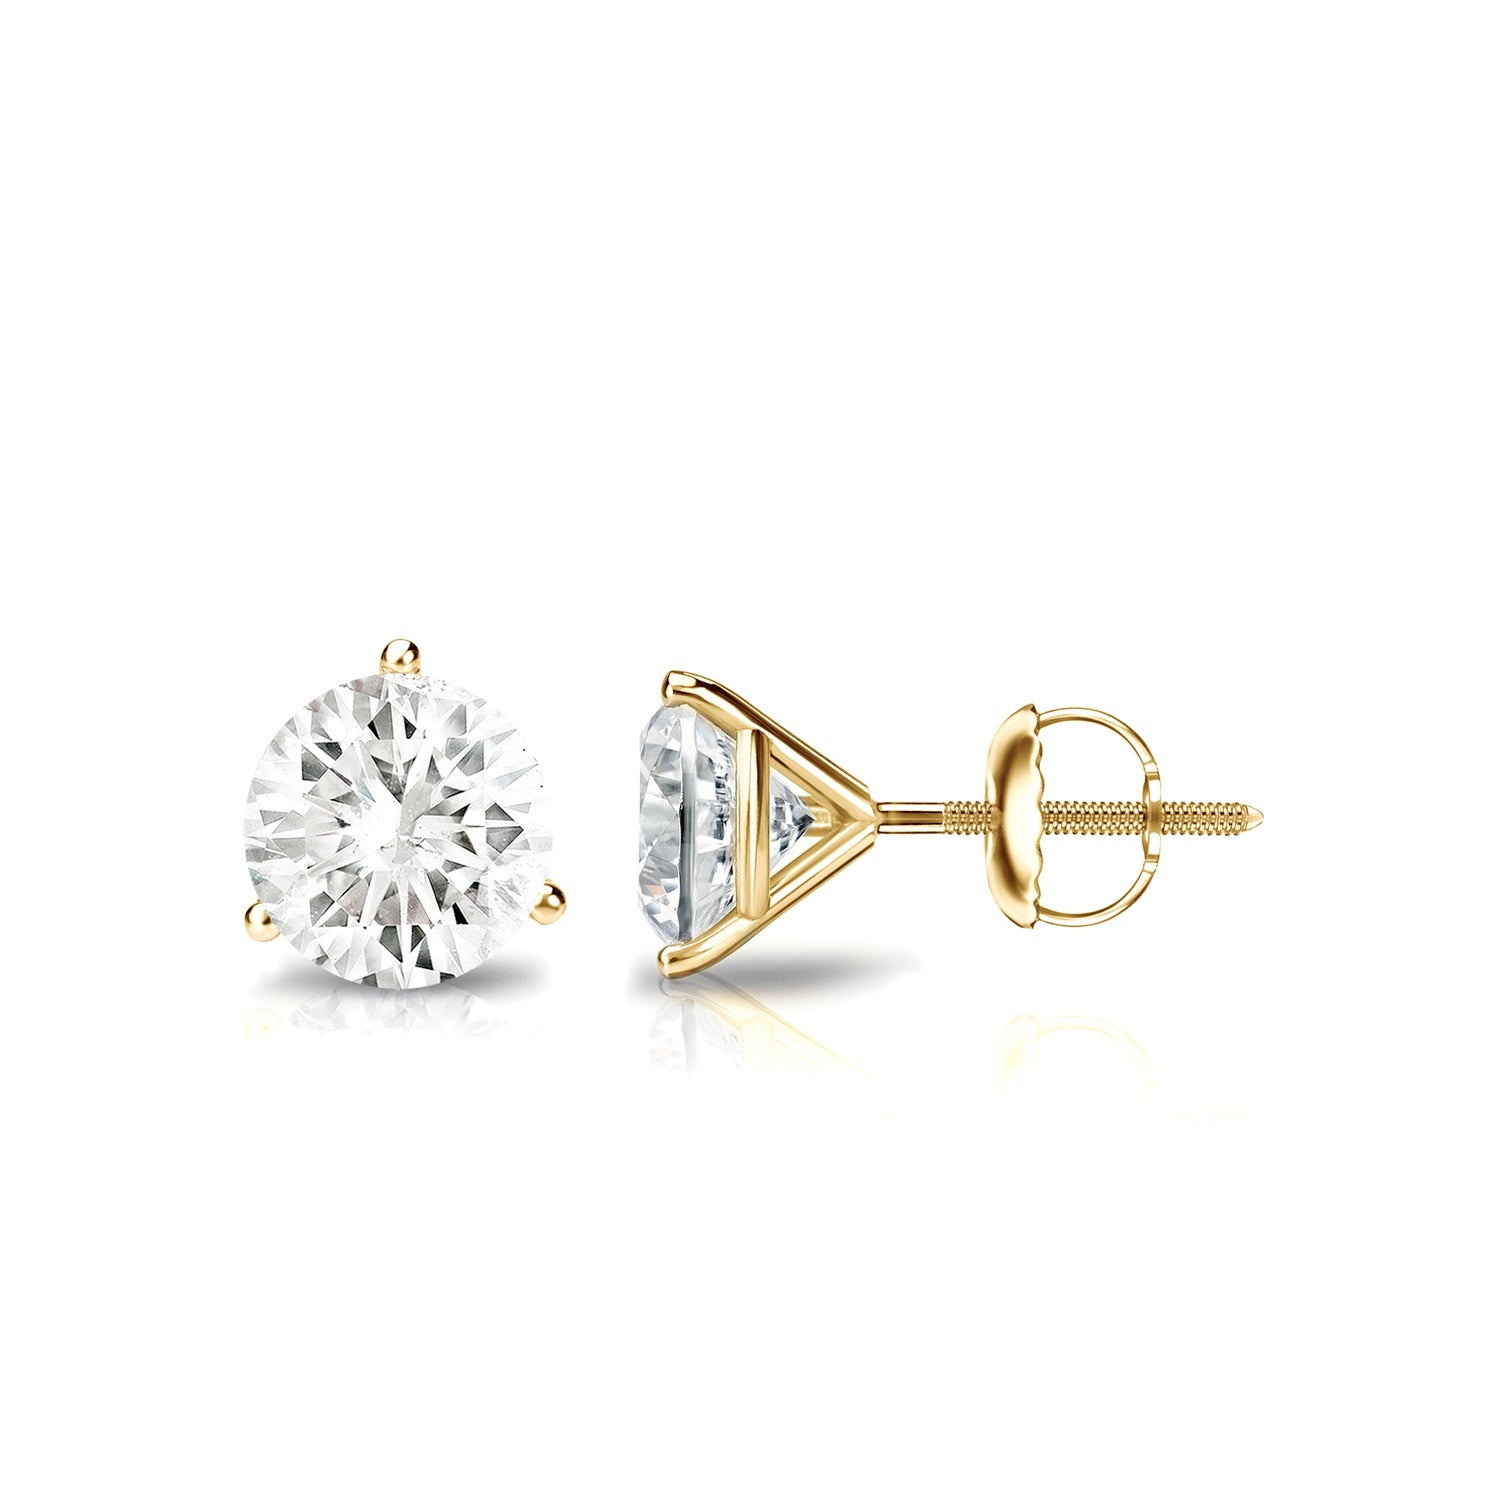 carat earrings diamond gold in itm r setting prong stud martini round